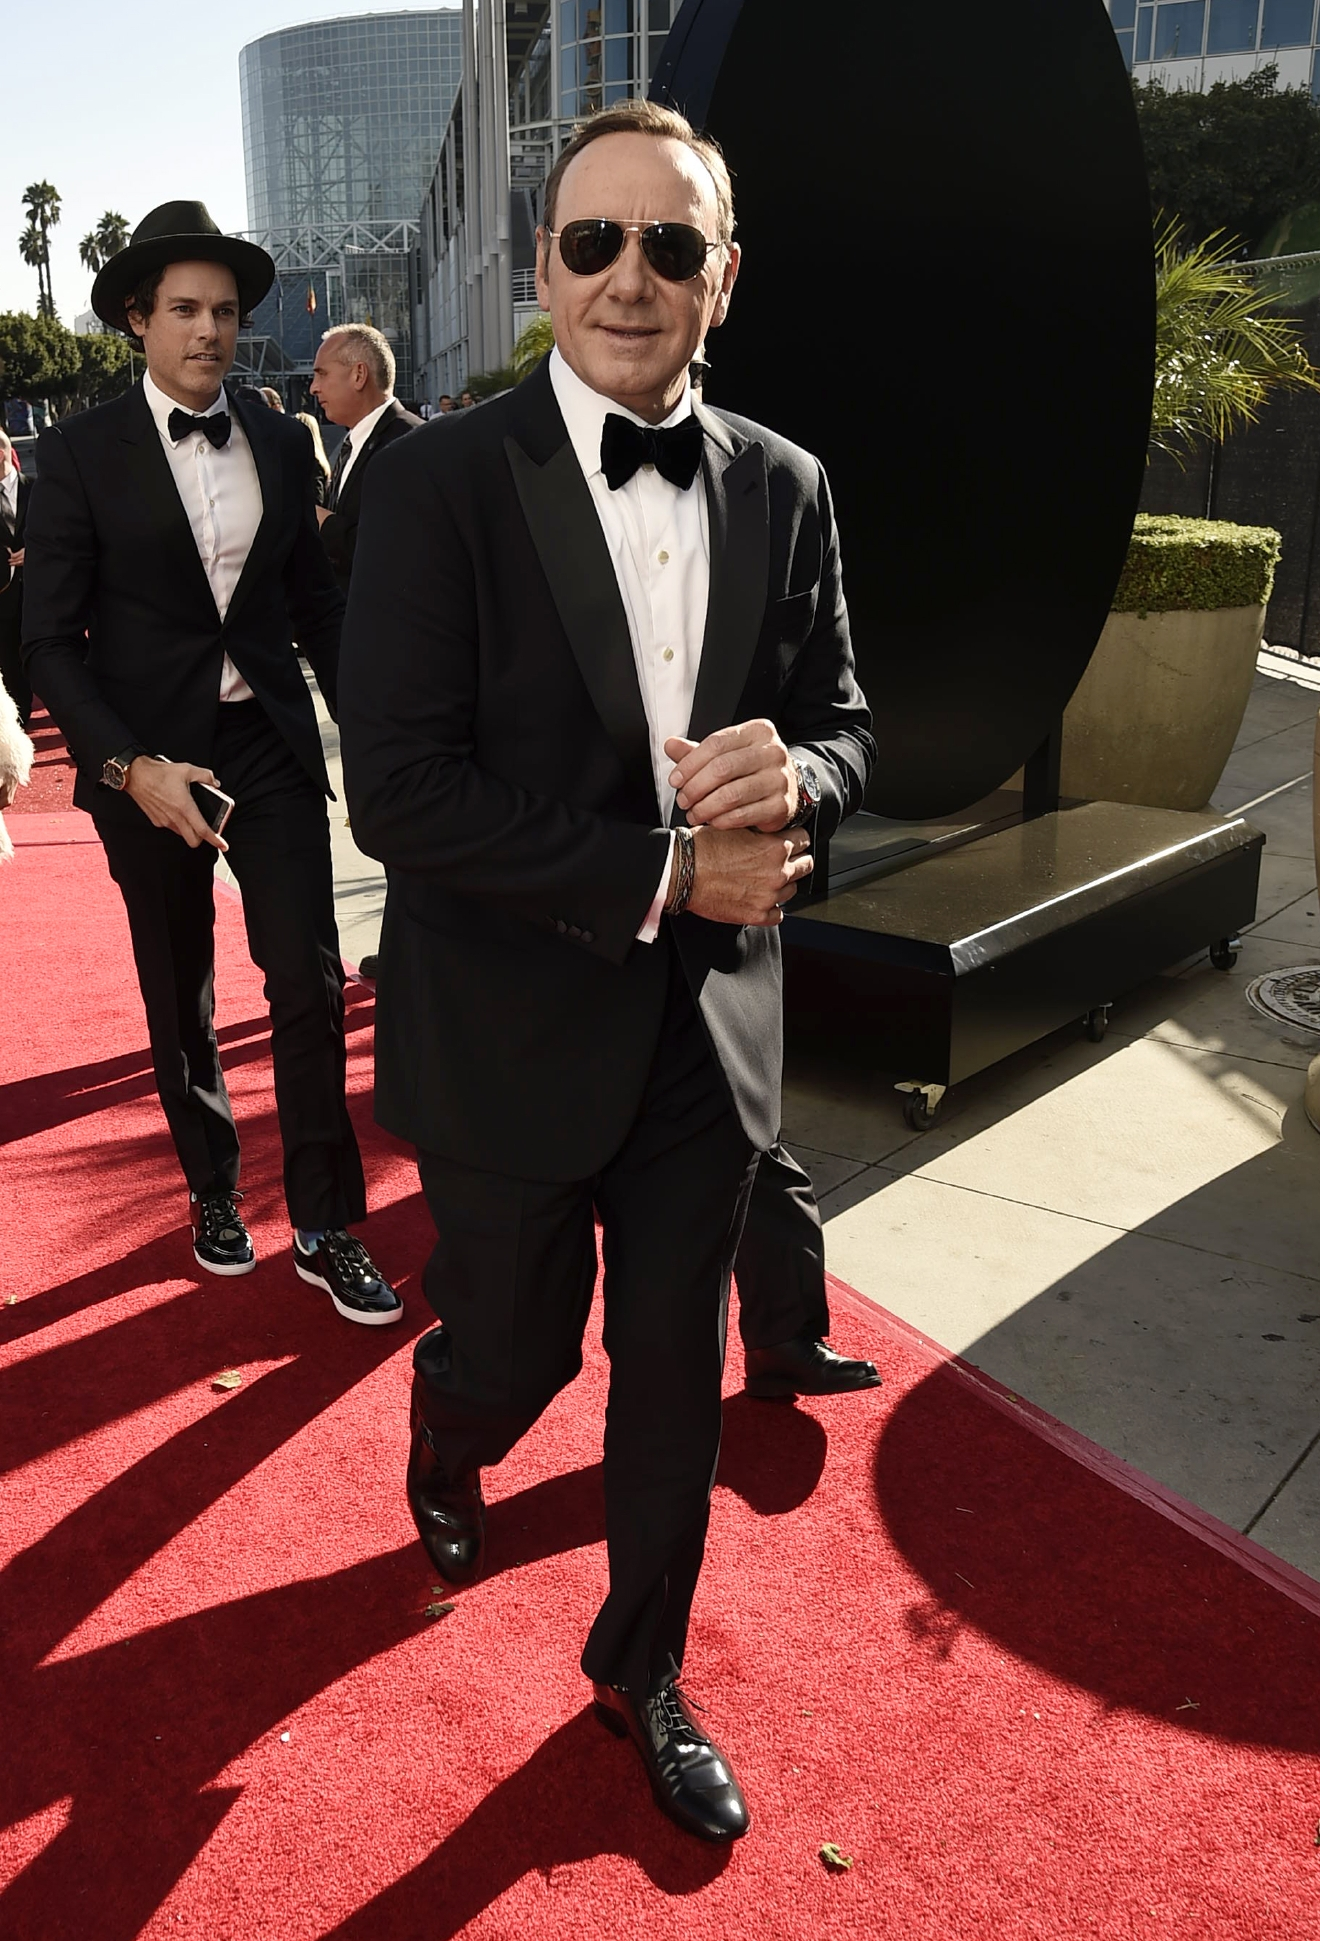 EXCLUSIVE - Kevin Spacey arrives at the 68th Primetime Emmy Awards on Sunday, Sept. 18, 2016, at the Microsoft Theater in Los Angeles. (Photo by Dan Steinberg/Invision for the Television Academy/AP Images)